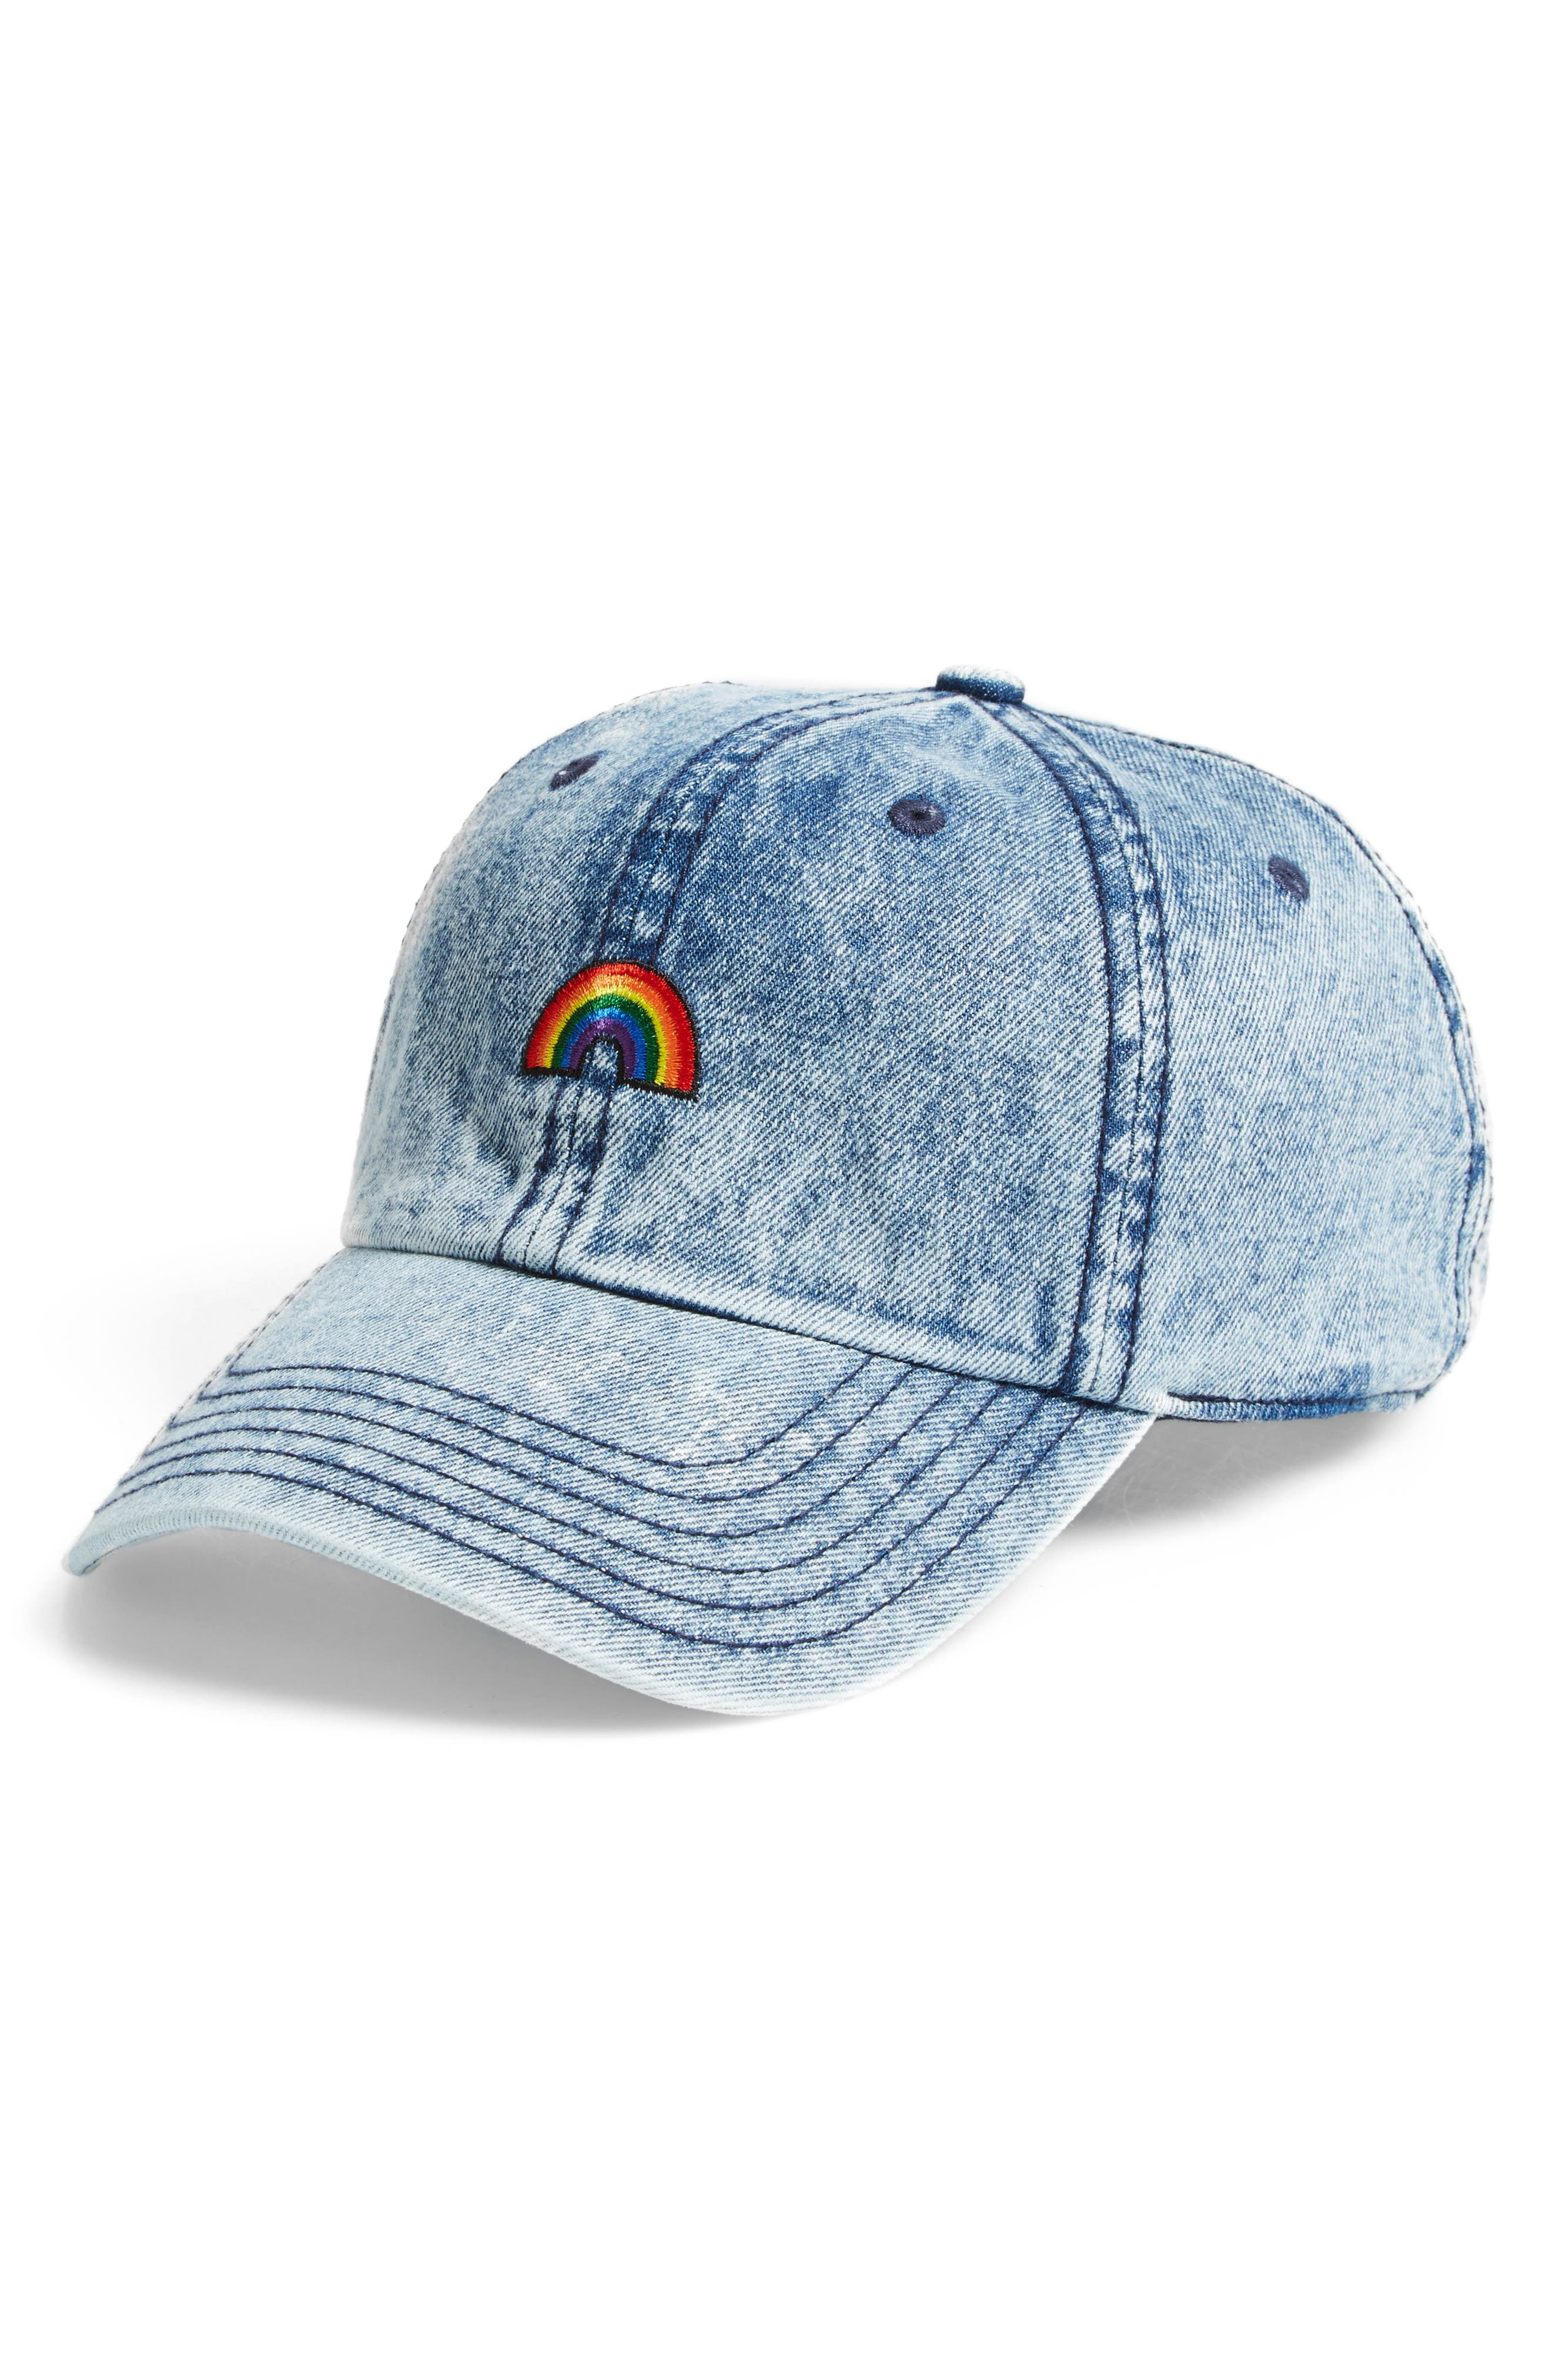 BP. Washed Denim Baseball Cap